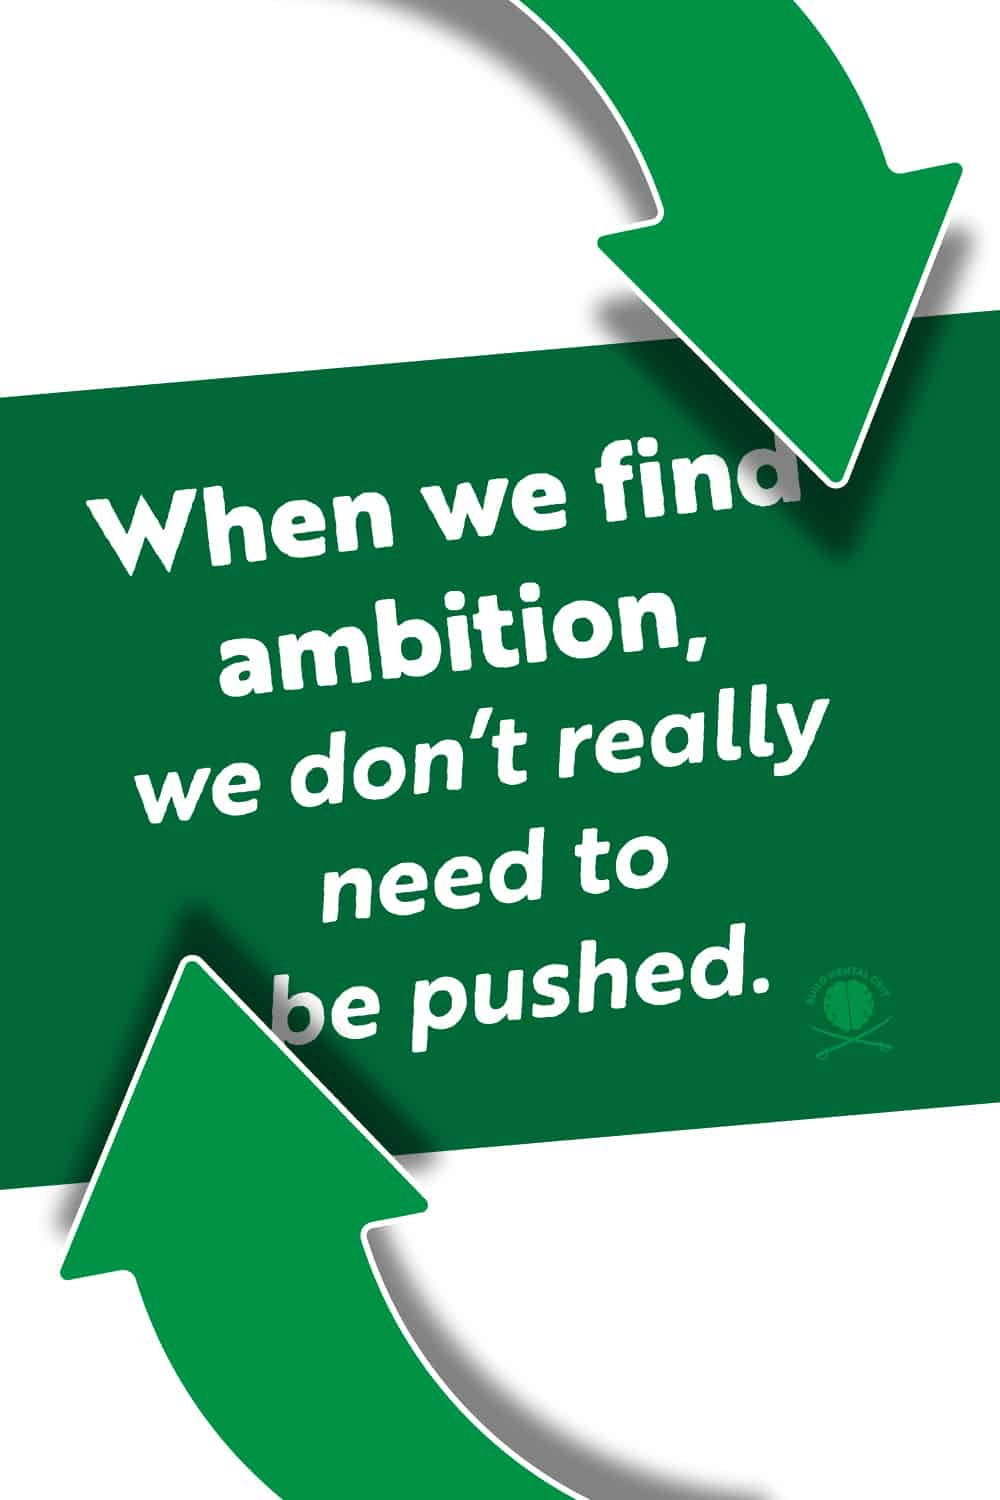 quote-about-finding-ambition-with-green-background-and-arrows